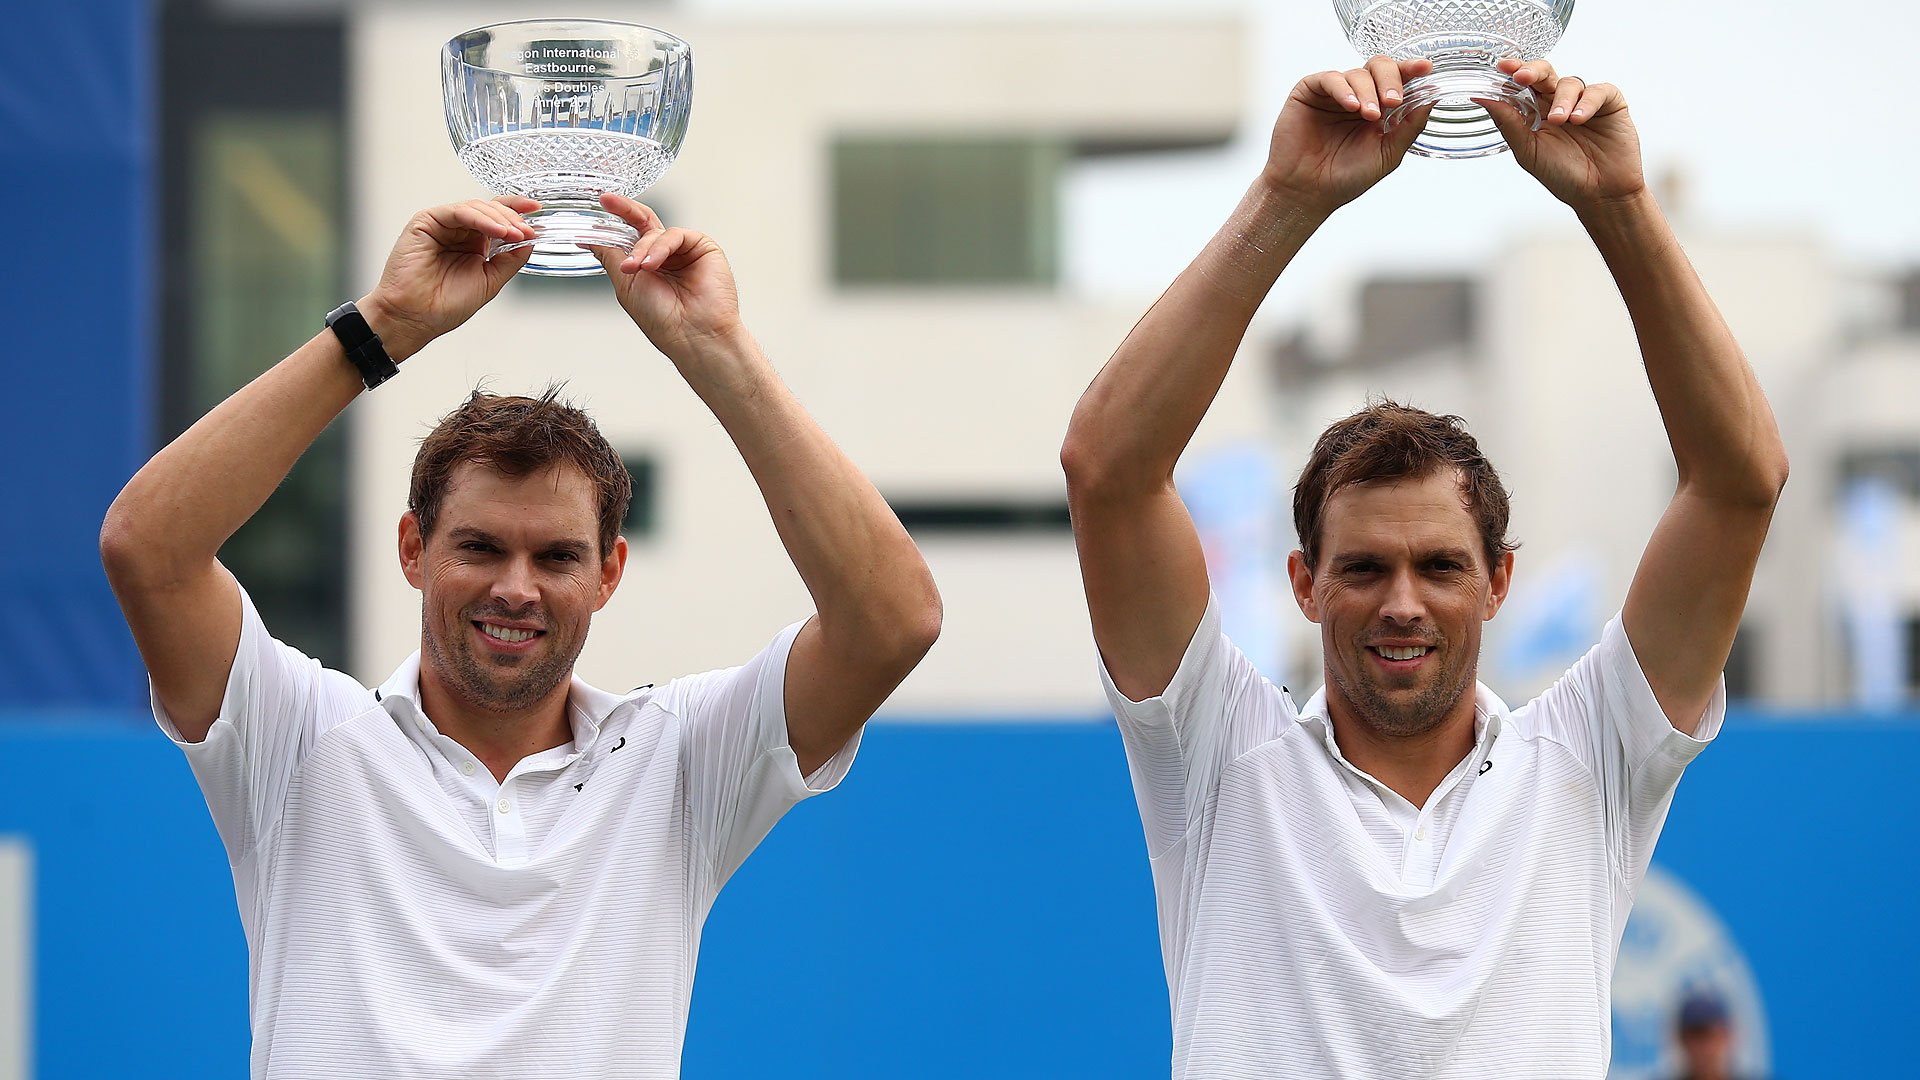 The @Bryanbros pick up their 113th #ATP doubles title at the #AegonInternational. Read: https://t.co/xN2qnapnNI https://t.co/CH7gml2HWp